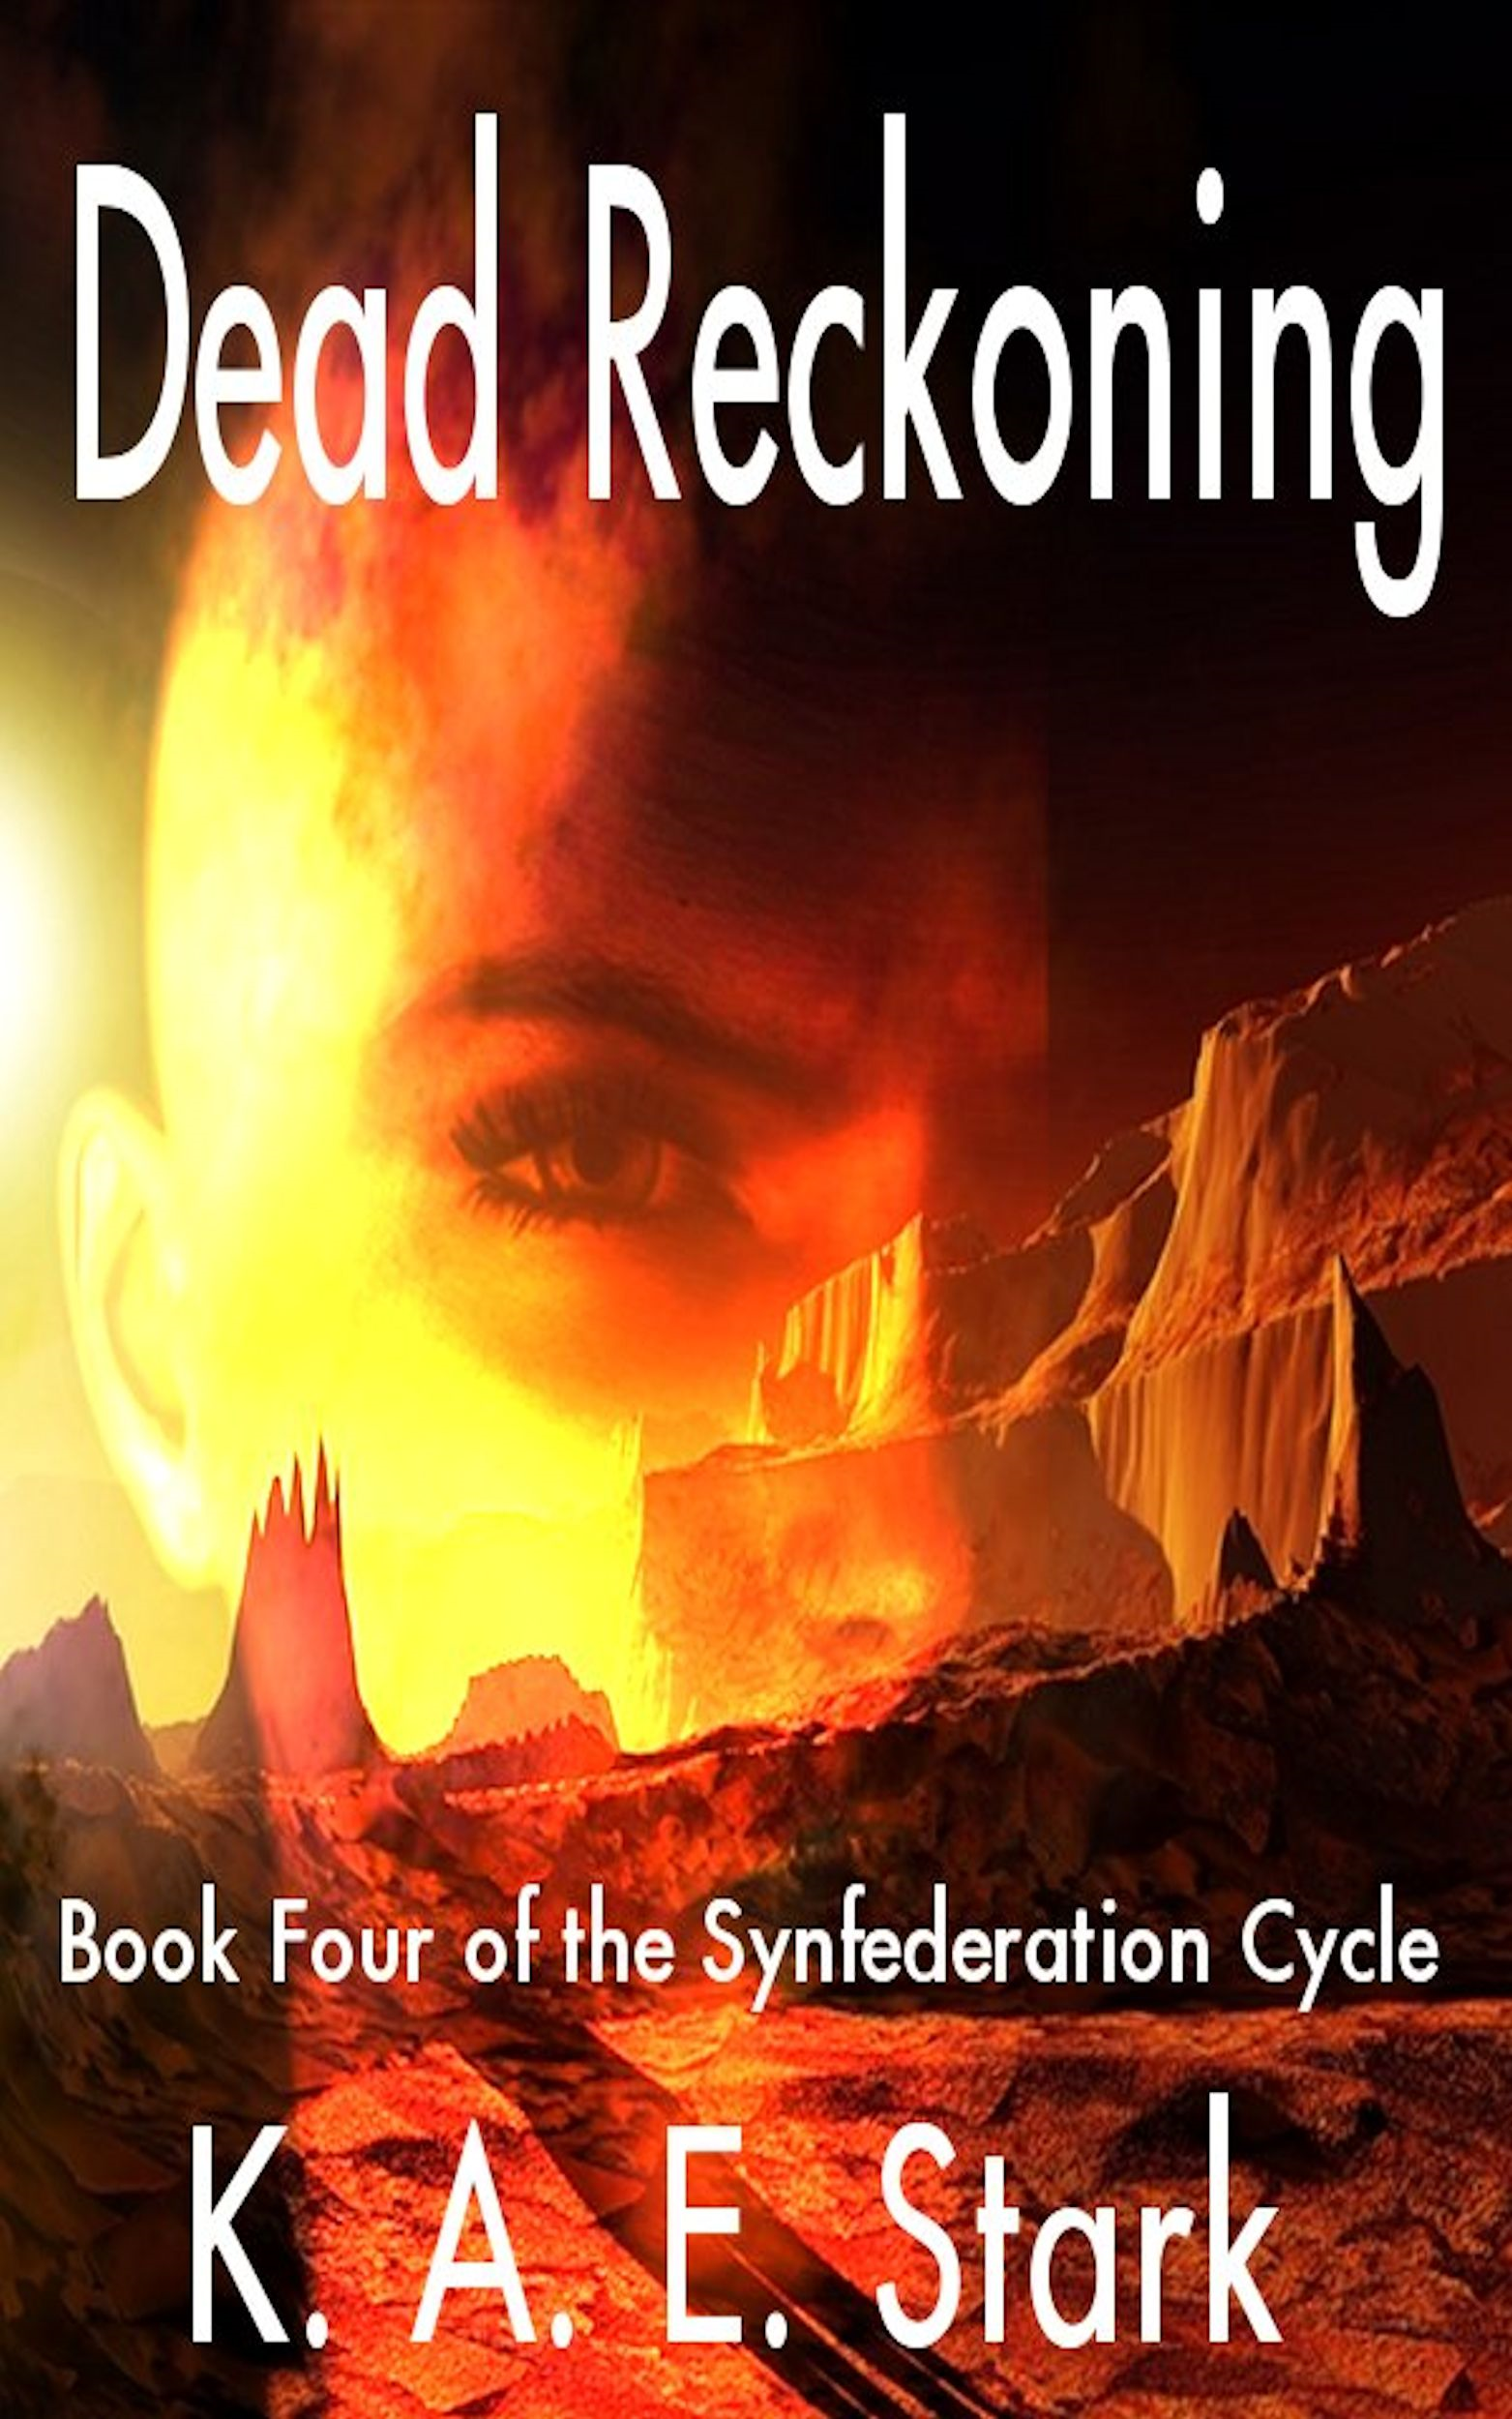 Dead Reckoning By: K. A. E. Stark